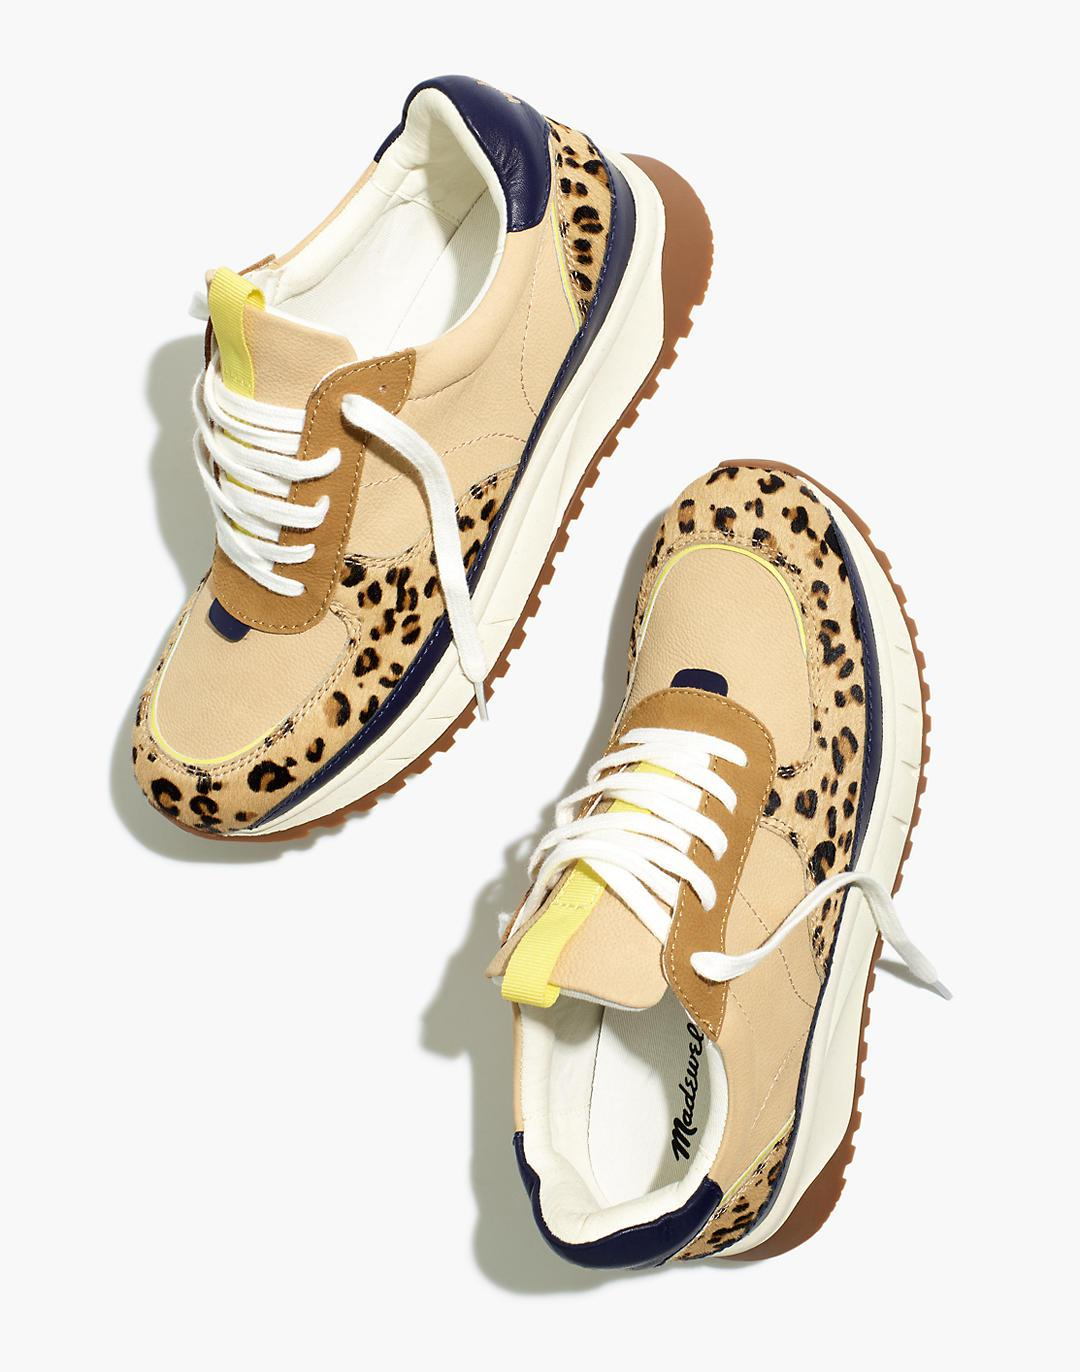 Kickoff Trainer Sneakers in Colorblock Leather and Leopard Calf Hair